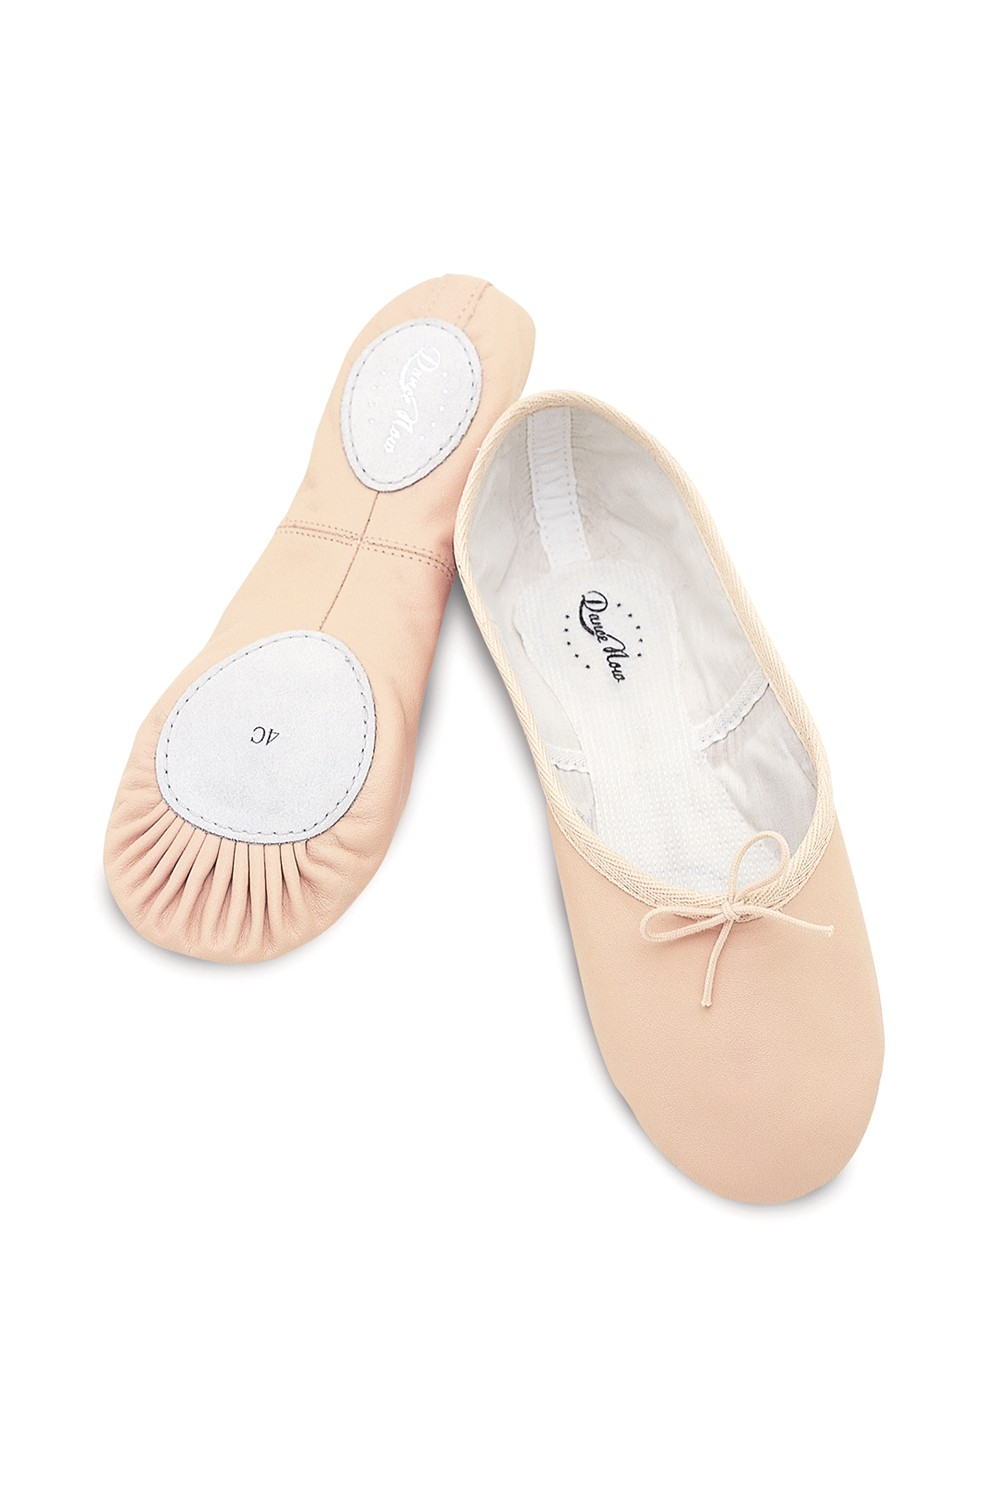 Dance Now Split Sole Ballet Girl's Ballet Shoes